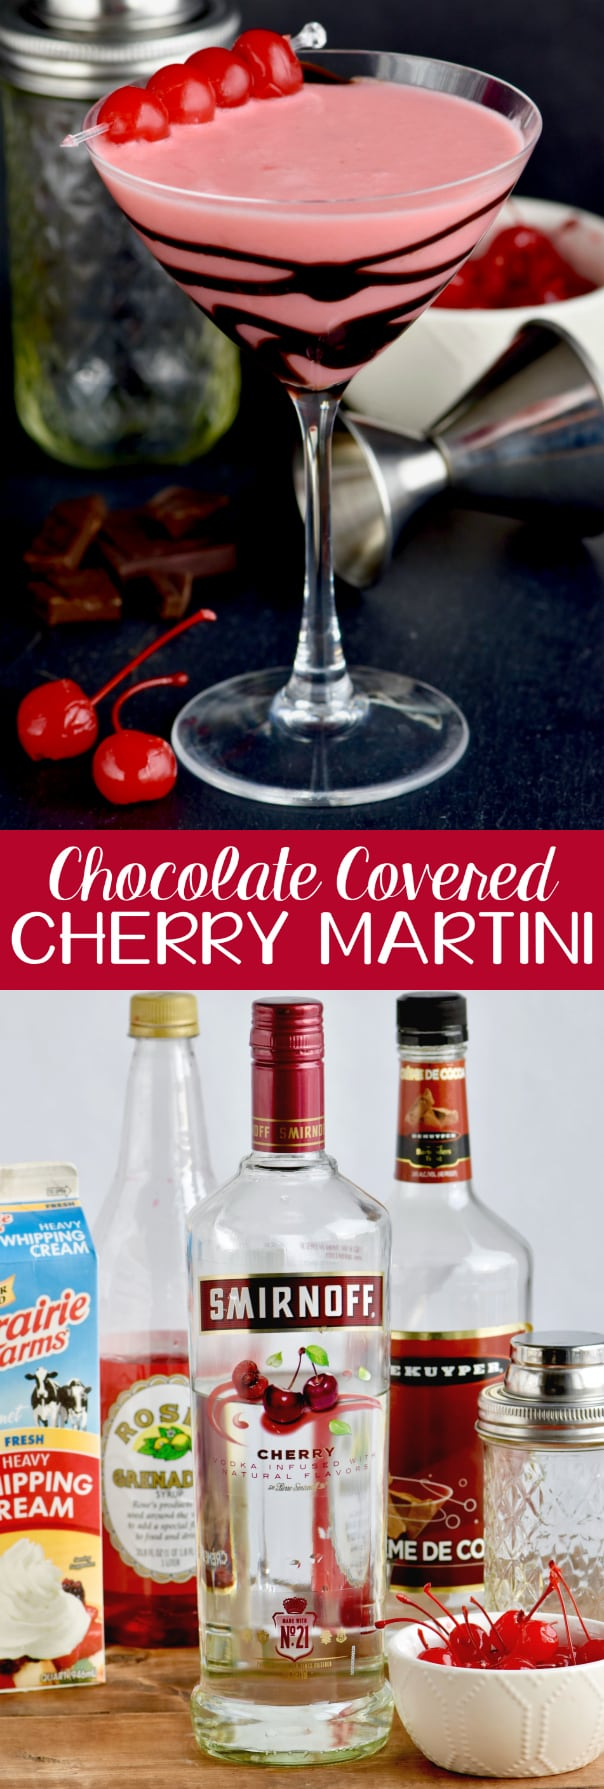 This Chocolate Covered Cherry Martini recipe is like dessert in a glass! Made with cherry vodka, this drink comes together in minutes!